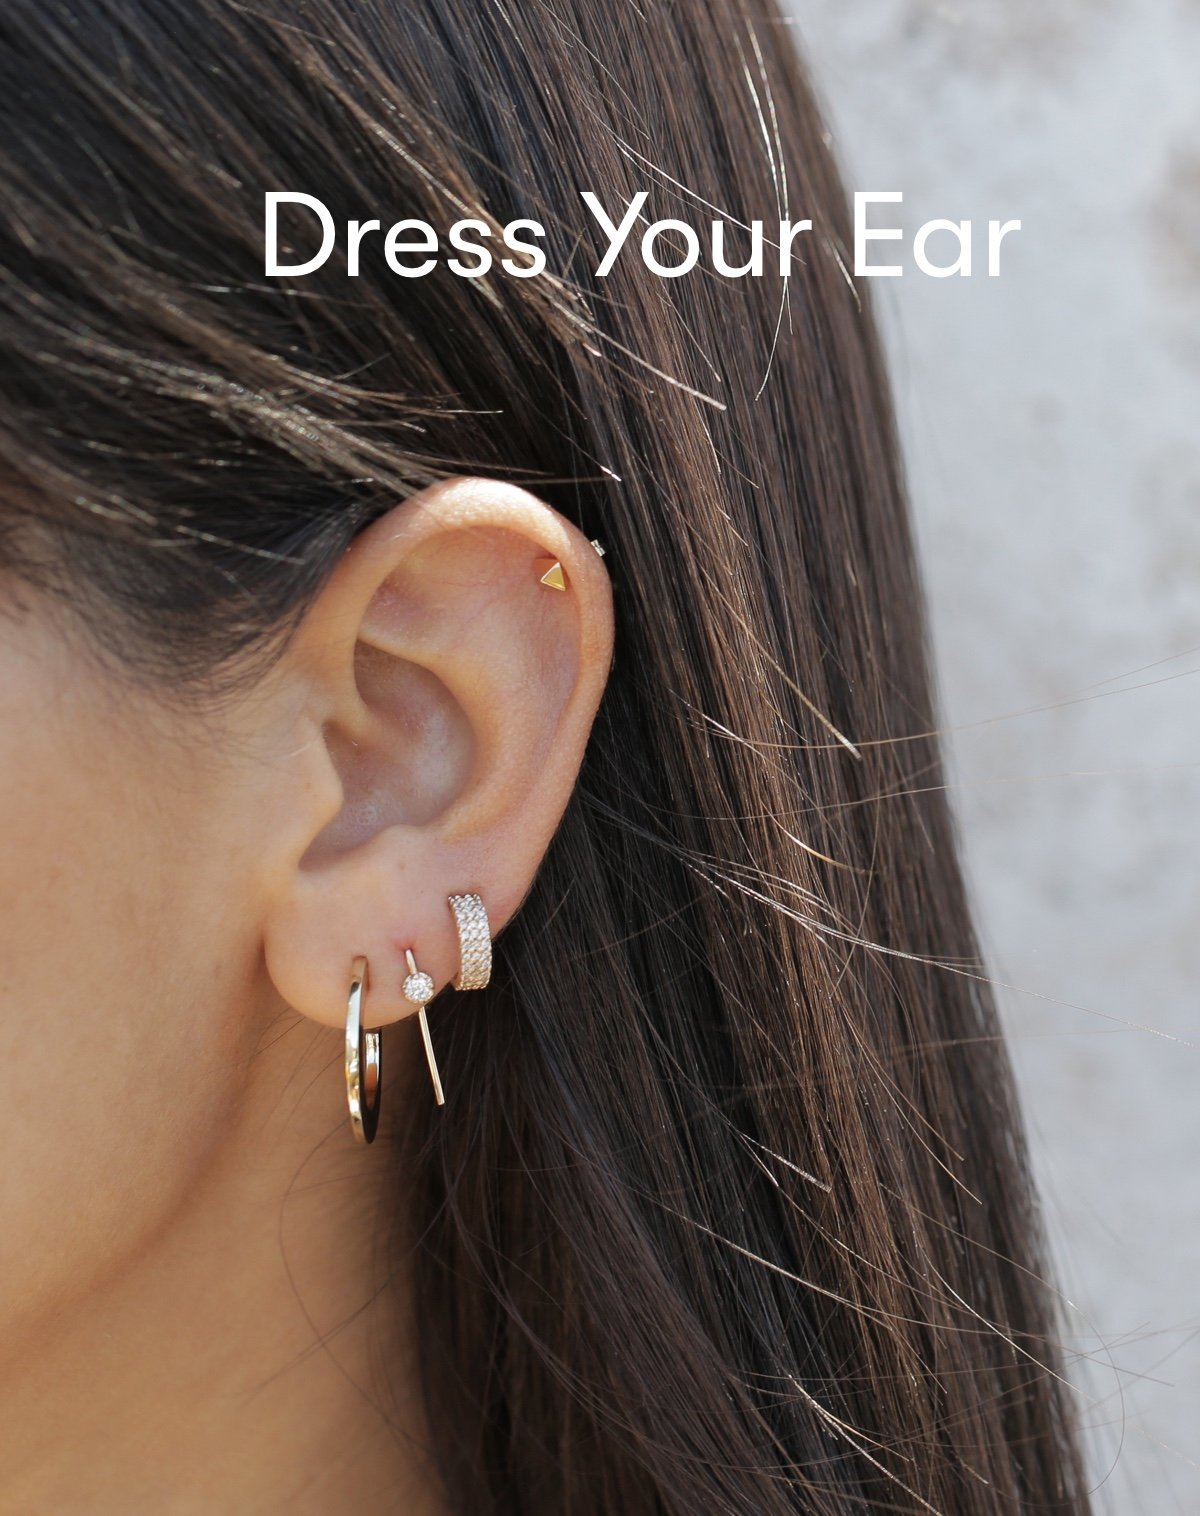 dress your ears